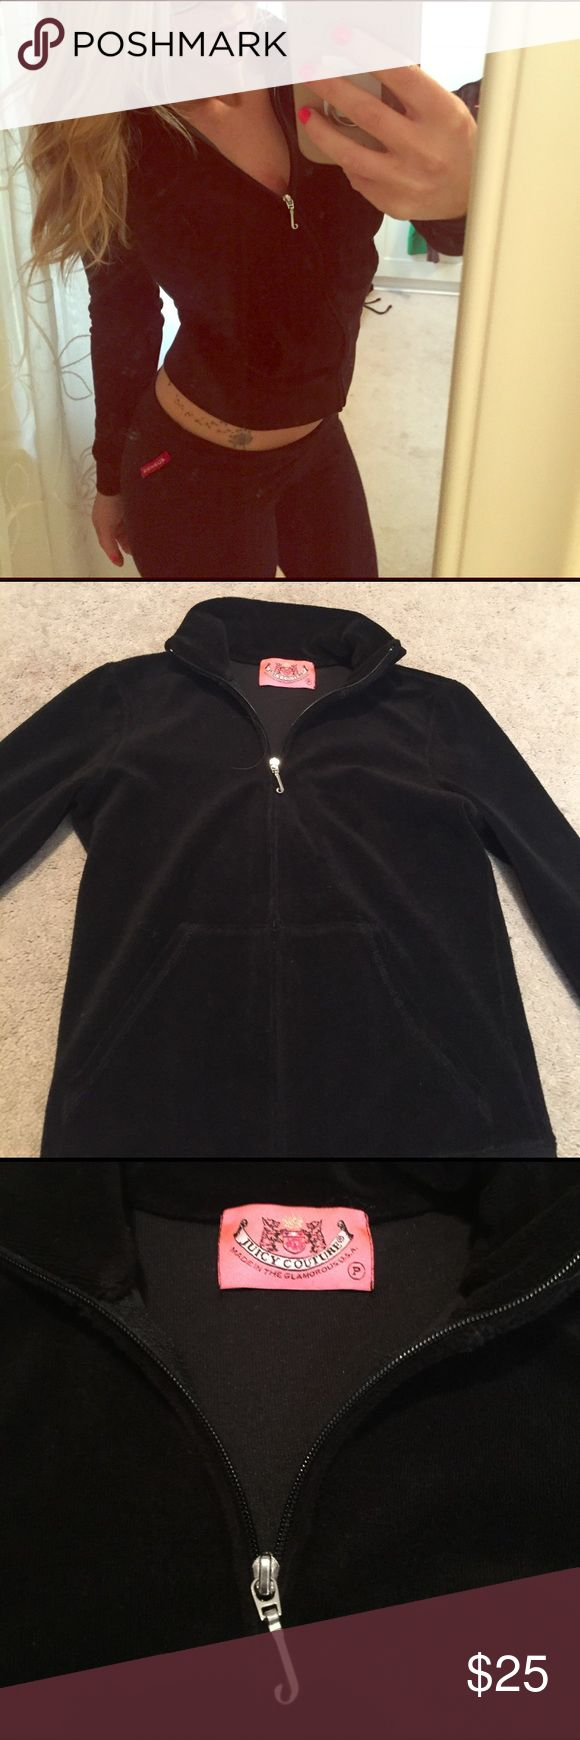 💯 authentic juicy terry cloth zip up jacket Super cute juicy black terry cloth zip up jacket in petite Juicy Couture Other